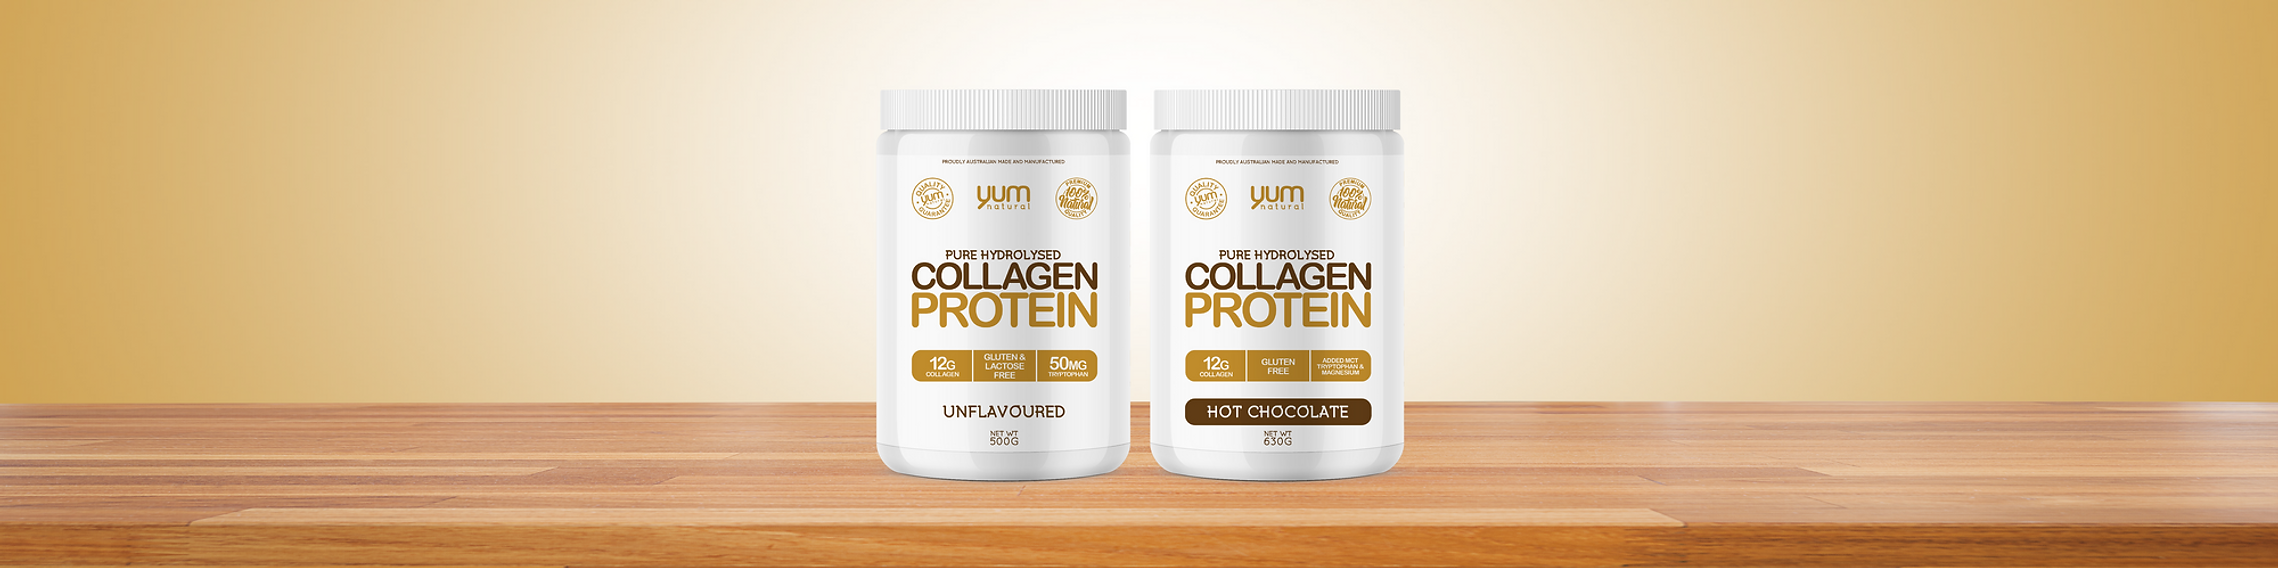 collagenproteinpsd.png